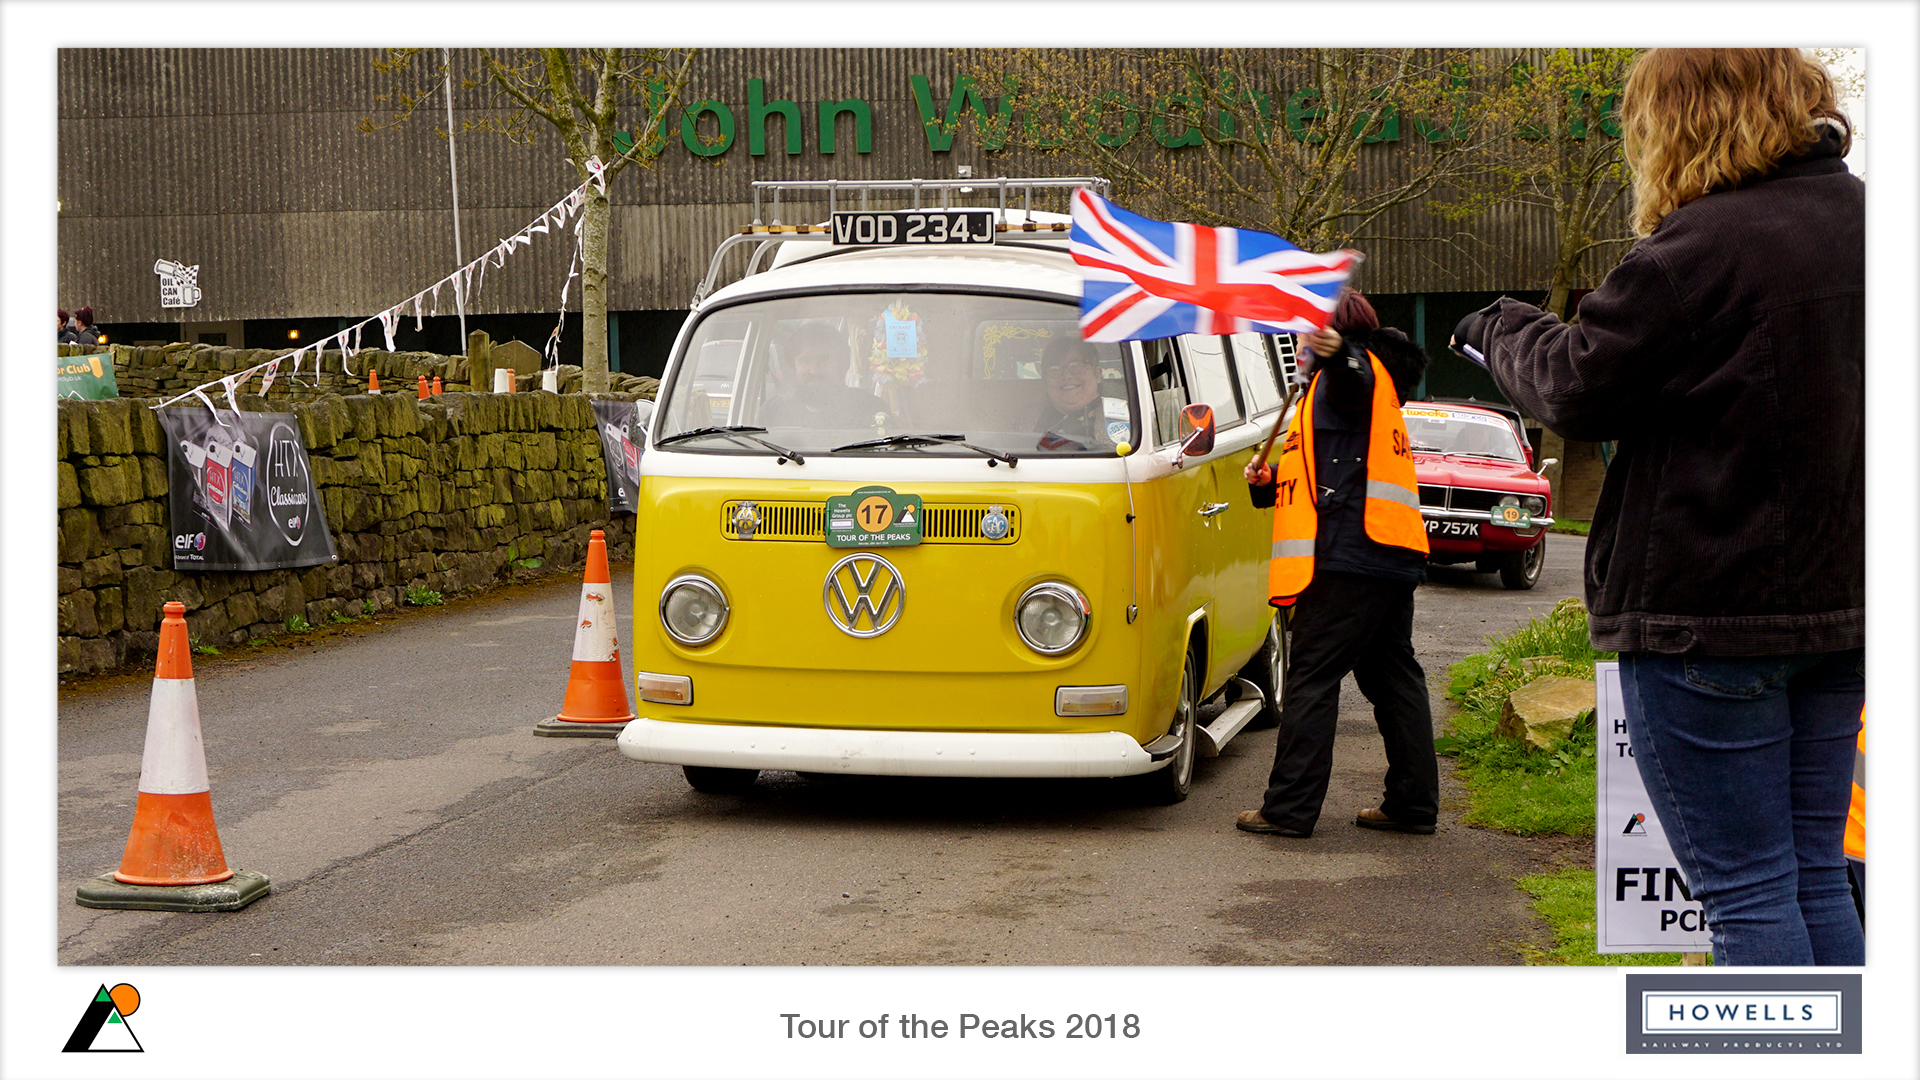 The 'Tour' | Two Peaks Motor Club | Holmfirth